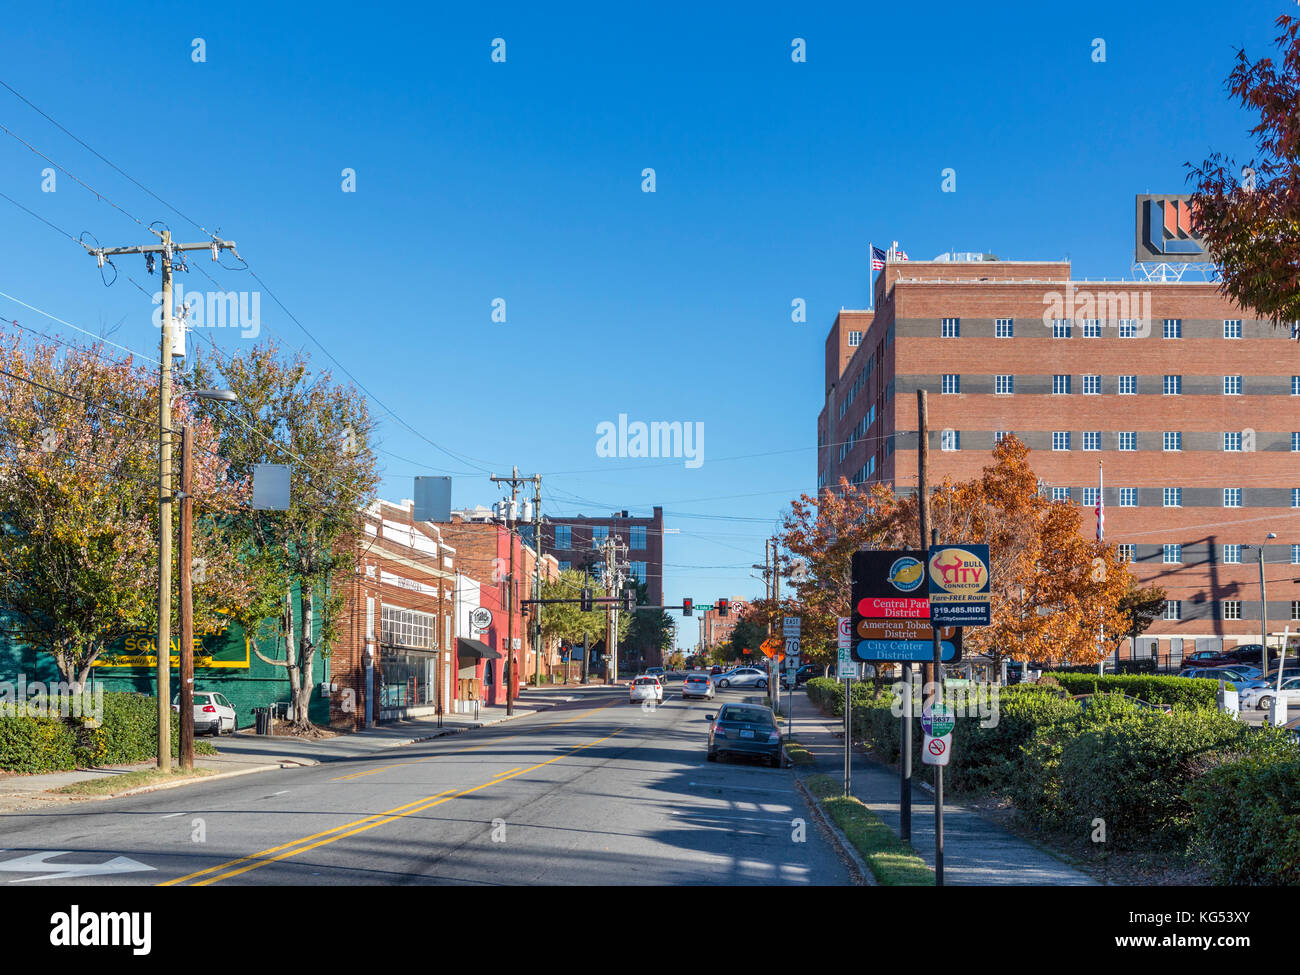 West Main Street in downtown Durham, North Carolina, USA - Stock Image